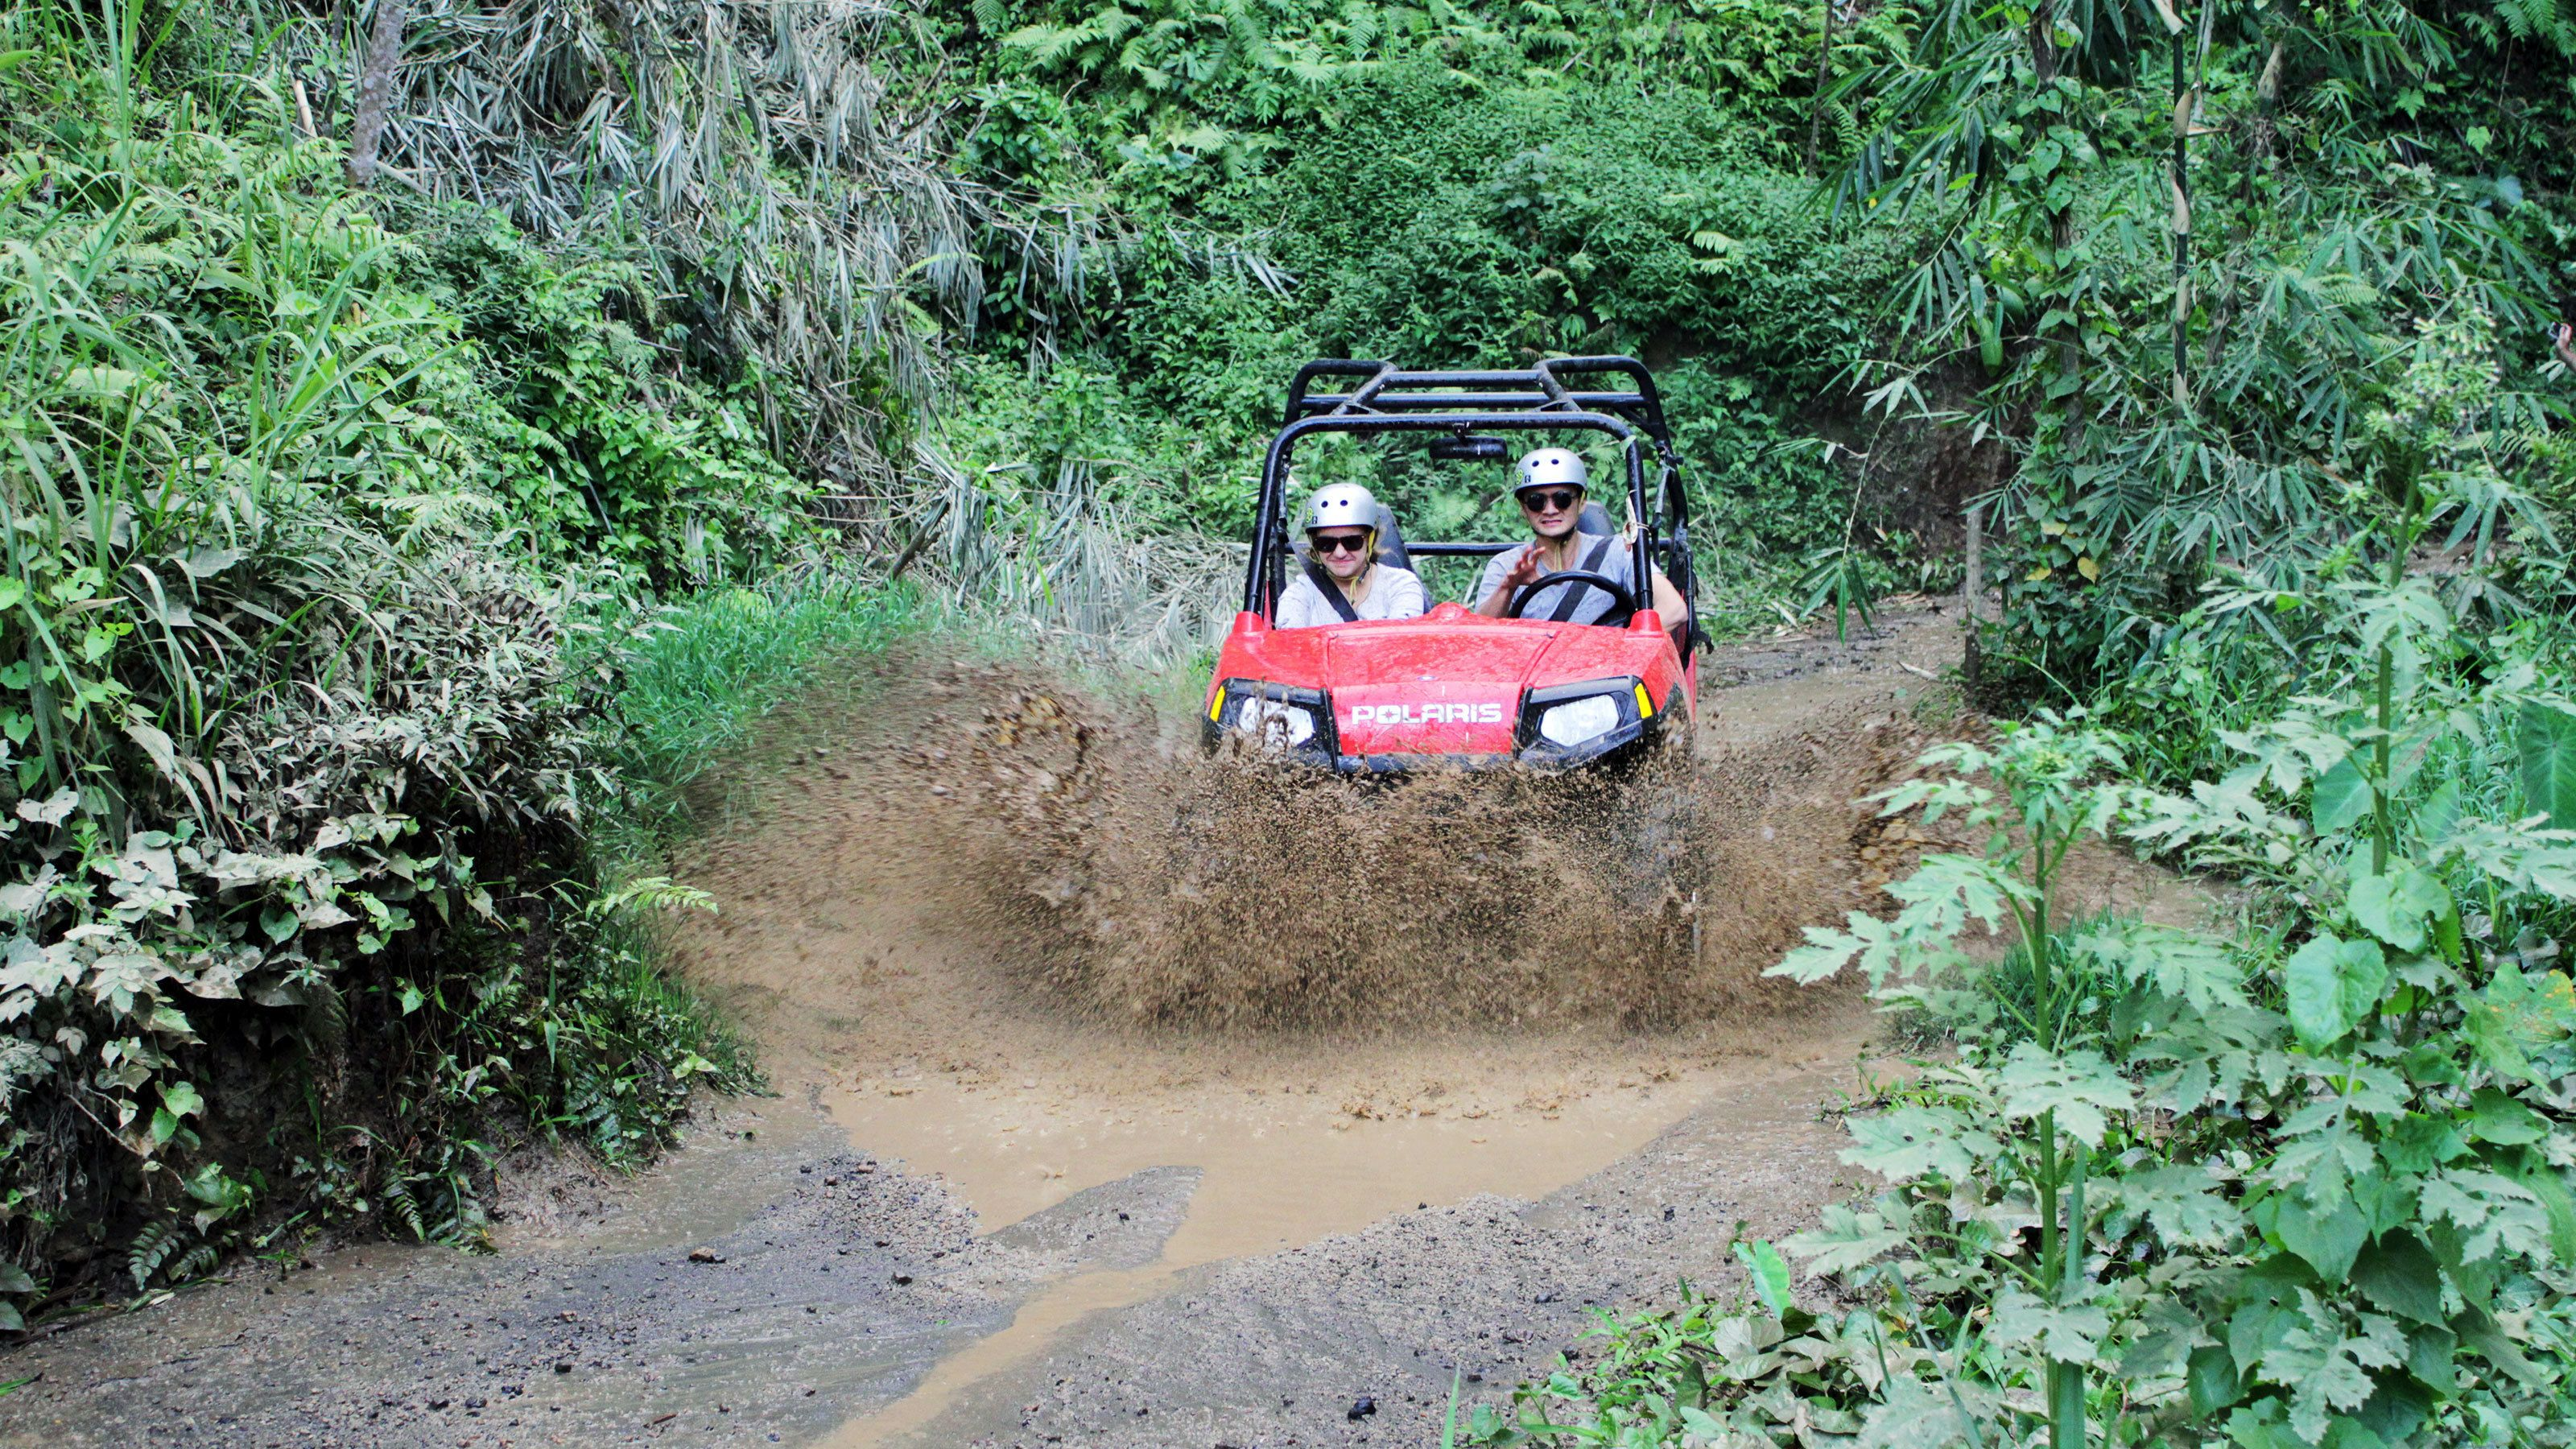 Two people in a buggy going through mud in Bali